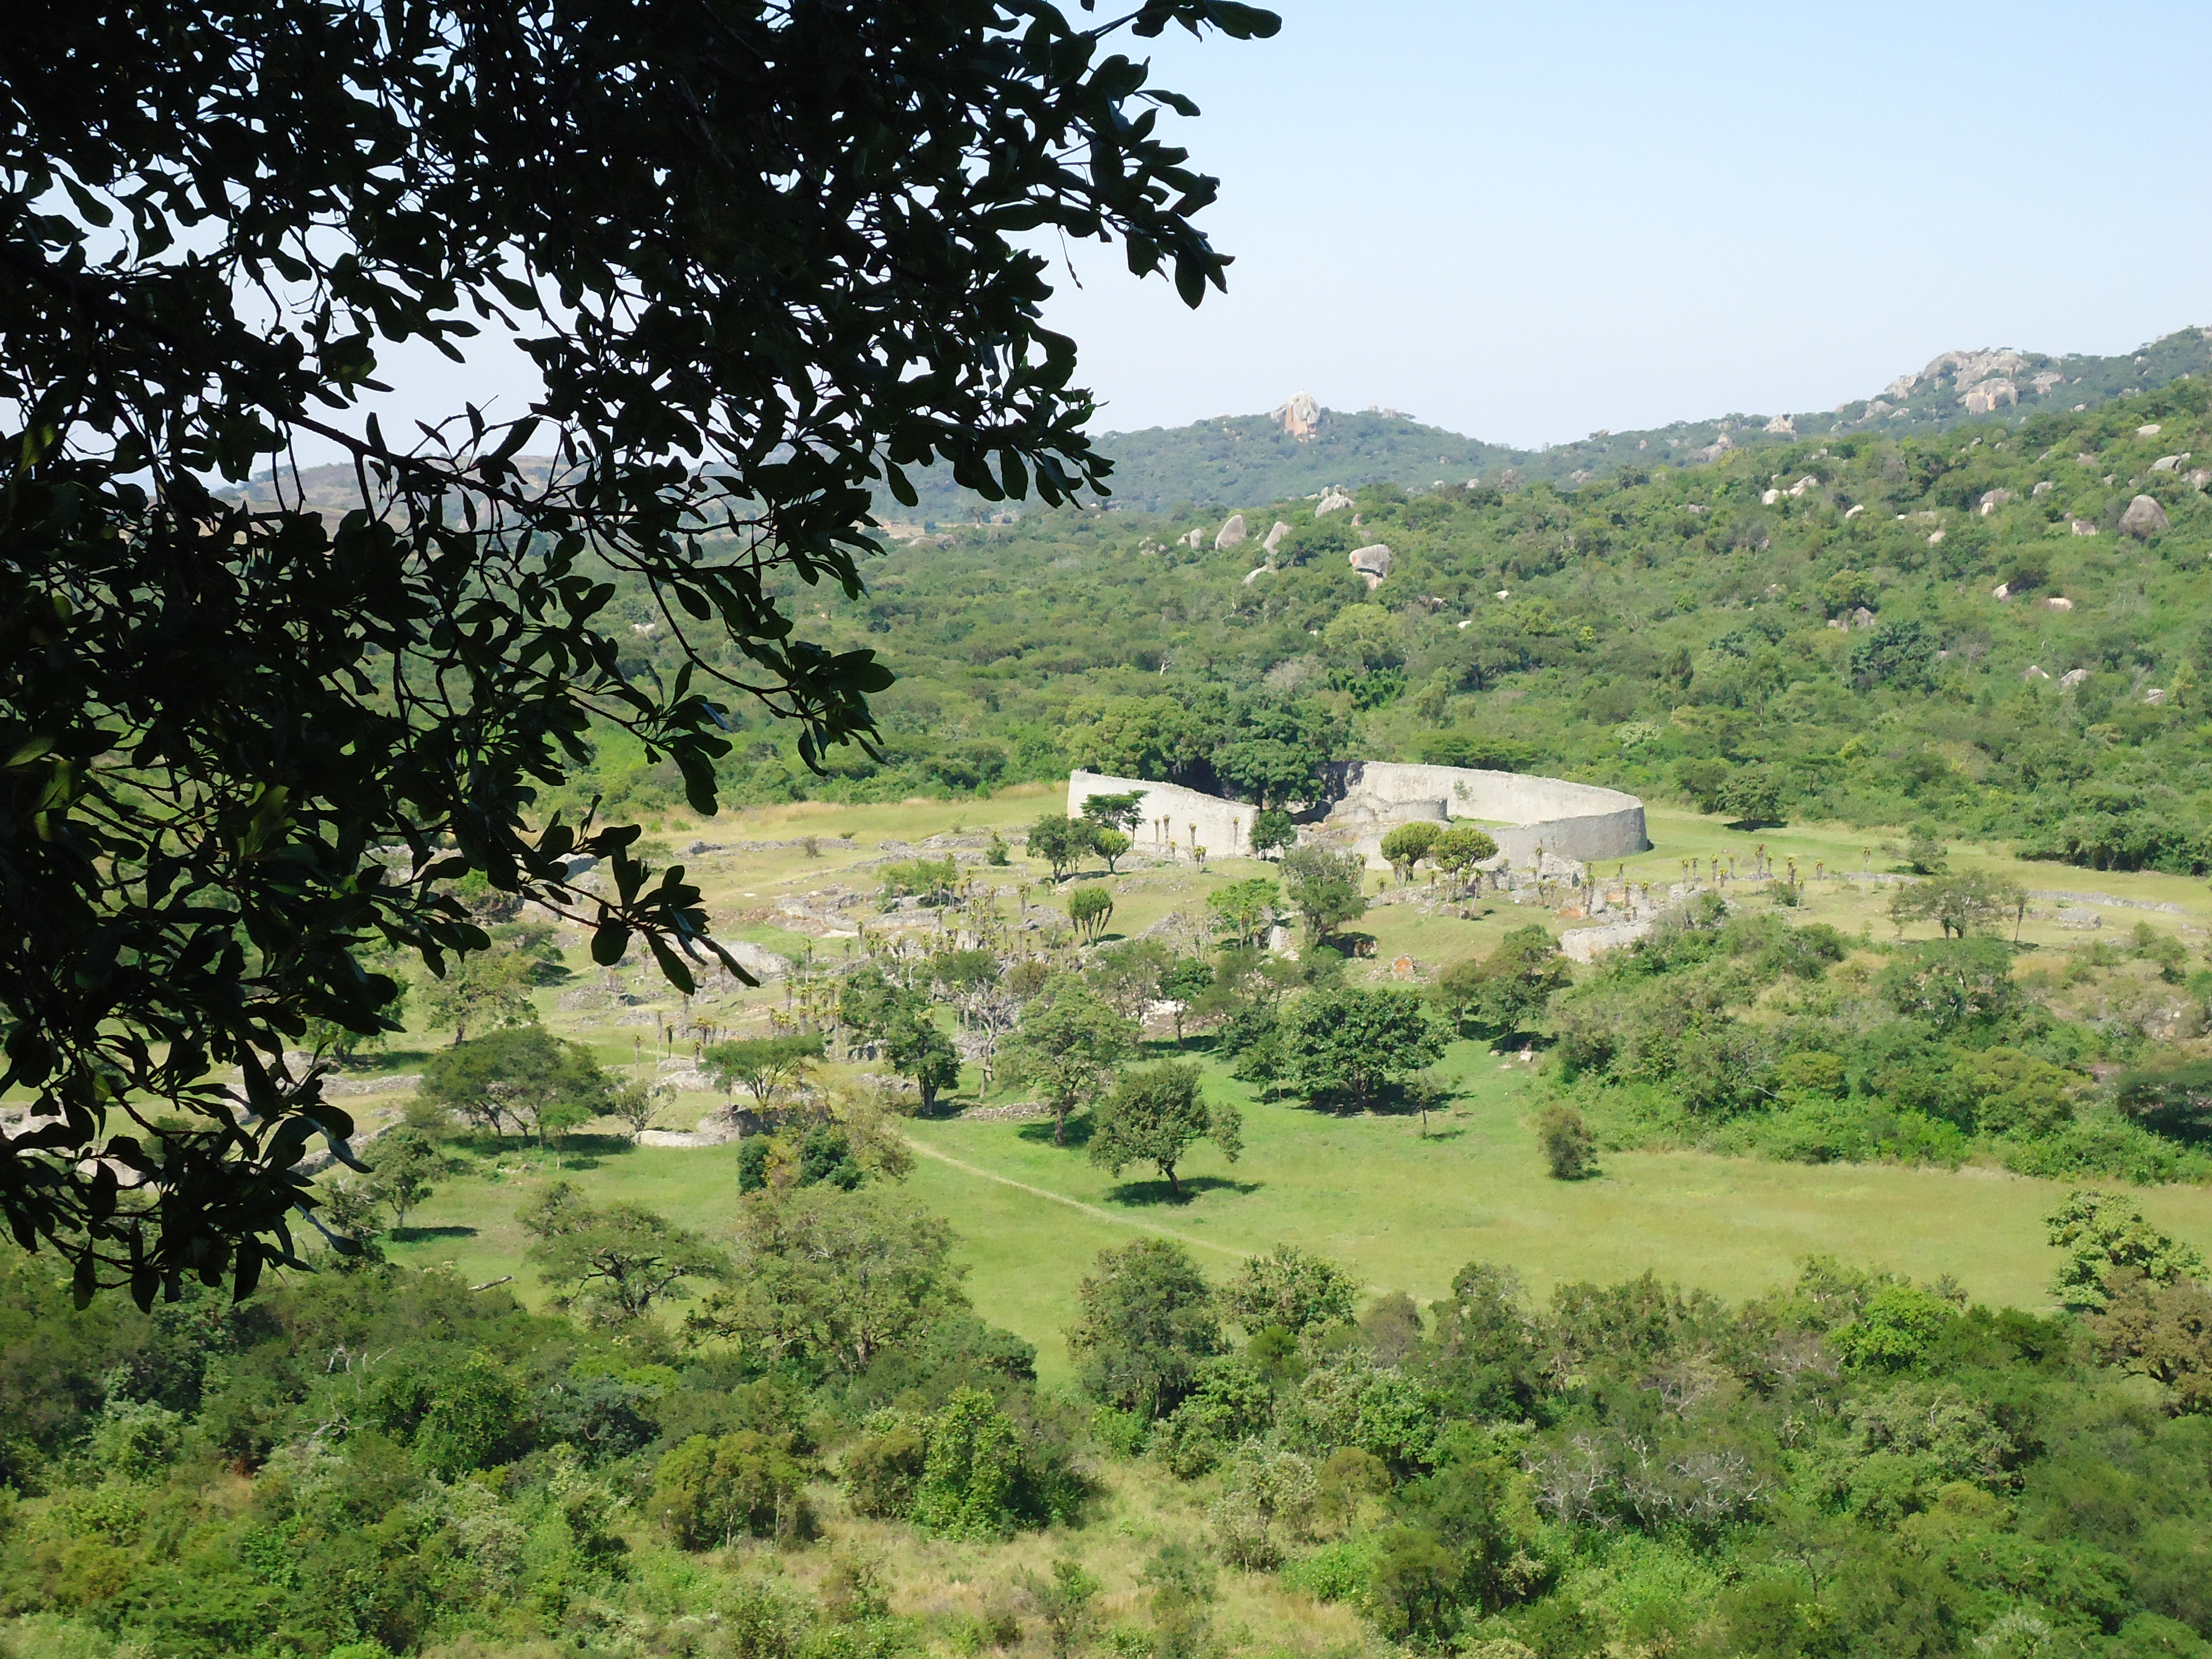 900 year old stone kingdom the breathtaking ruins of great 900 year old stone kingdom the breathtaking ruins of great zimbabwe cnn travel sciox Image collections